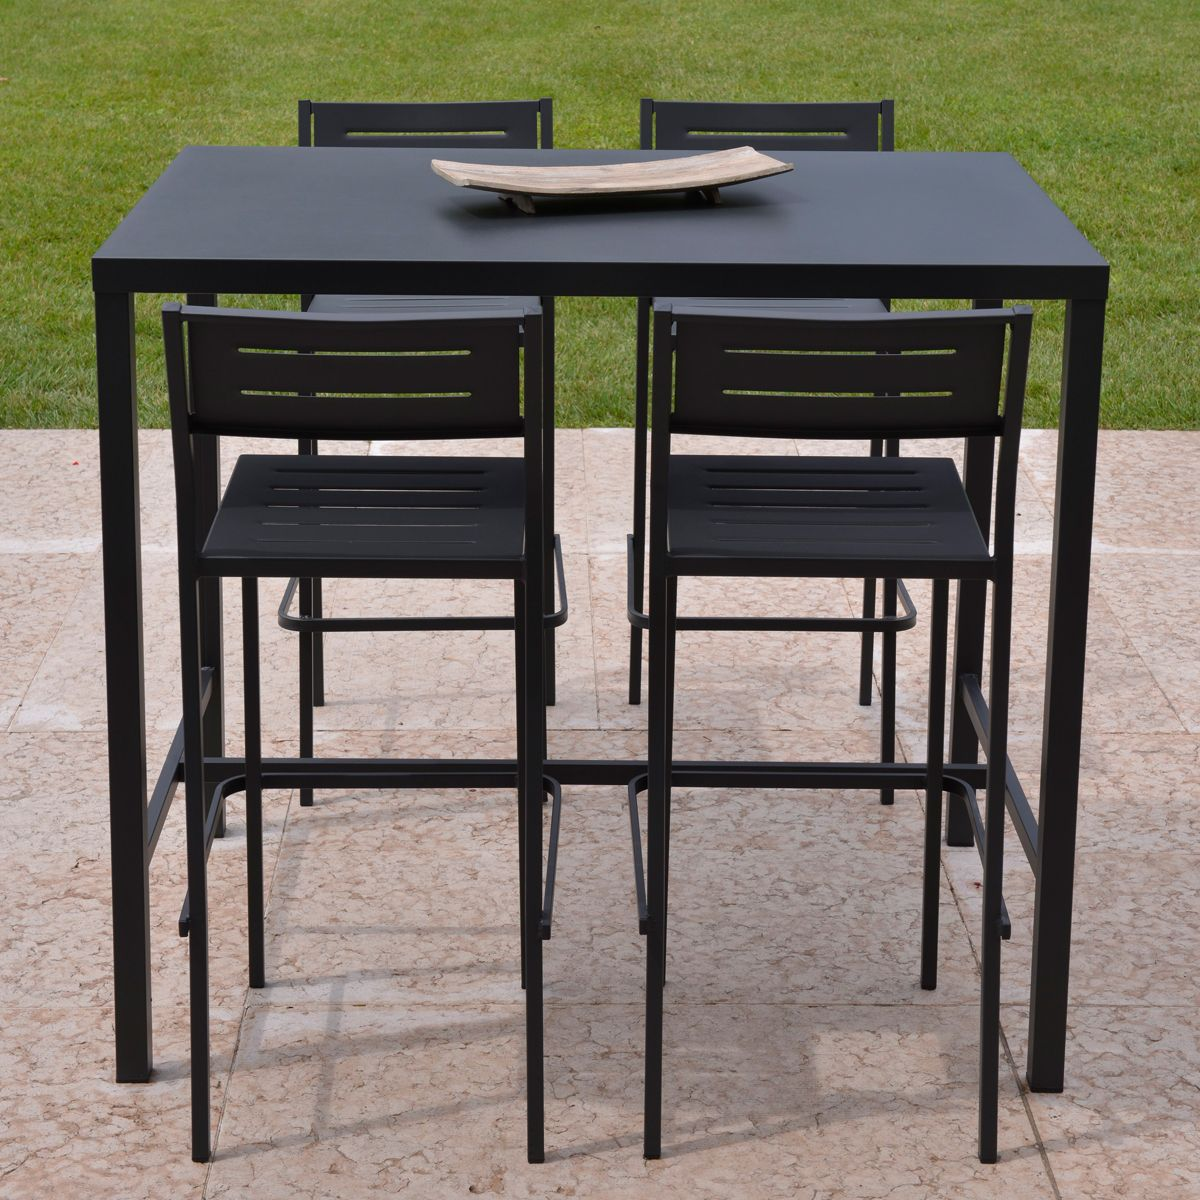 Tabouret Table Haute Of Ensemble De Jardin Table Haute Tabouret Dorio Rd Italia